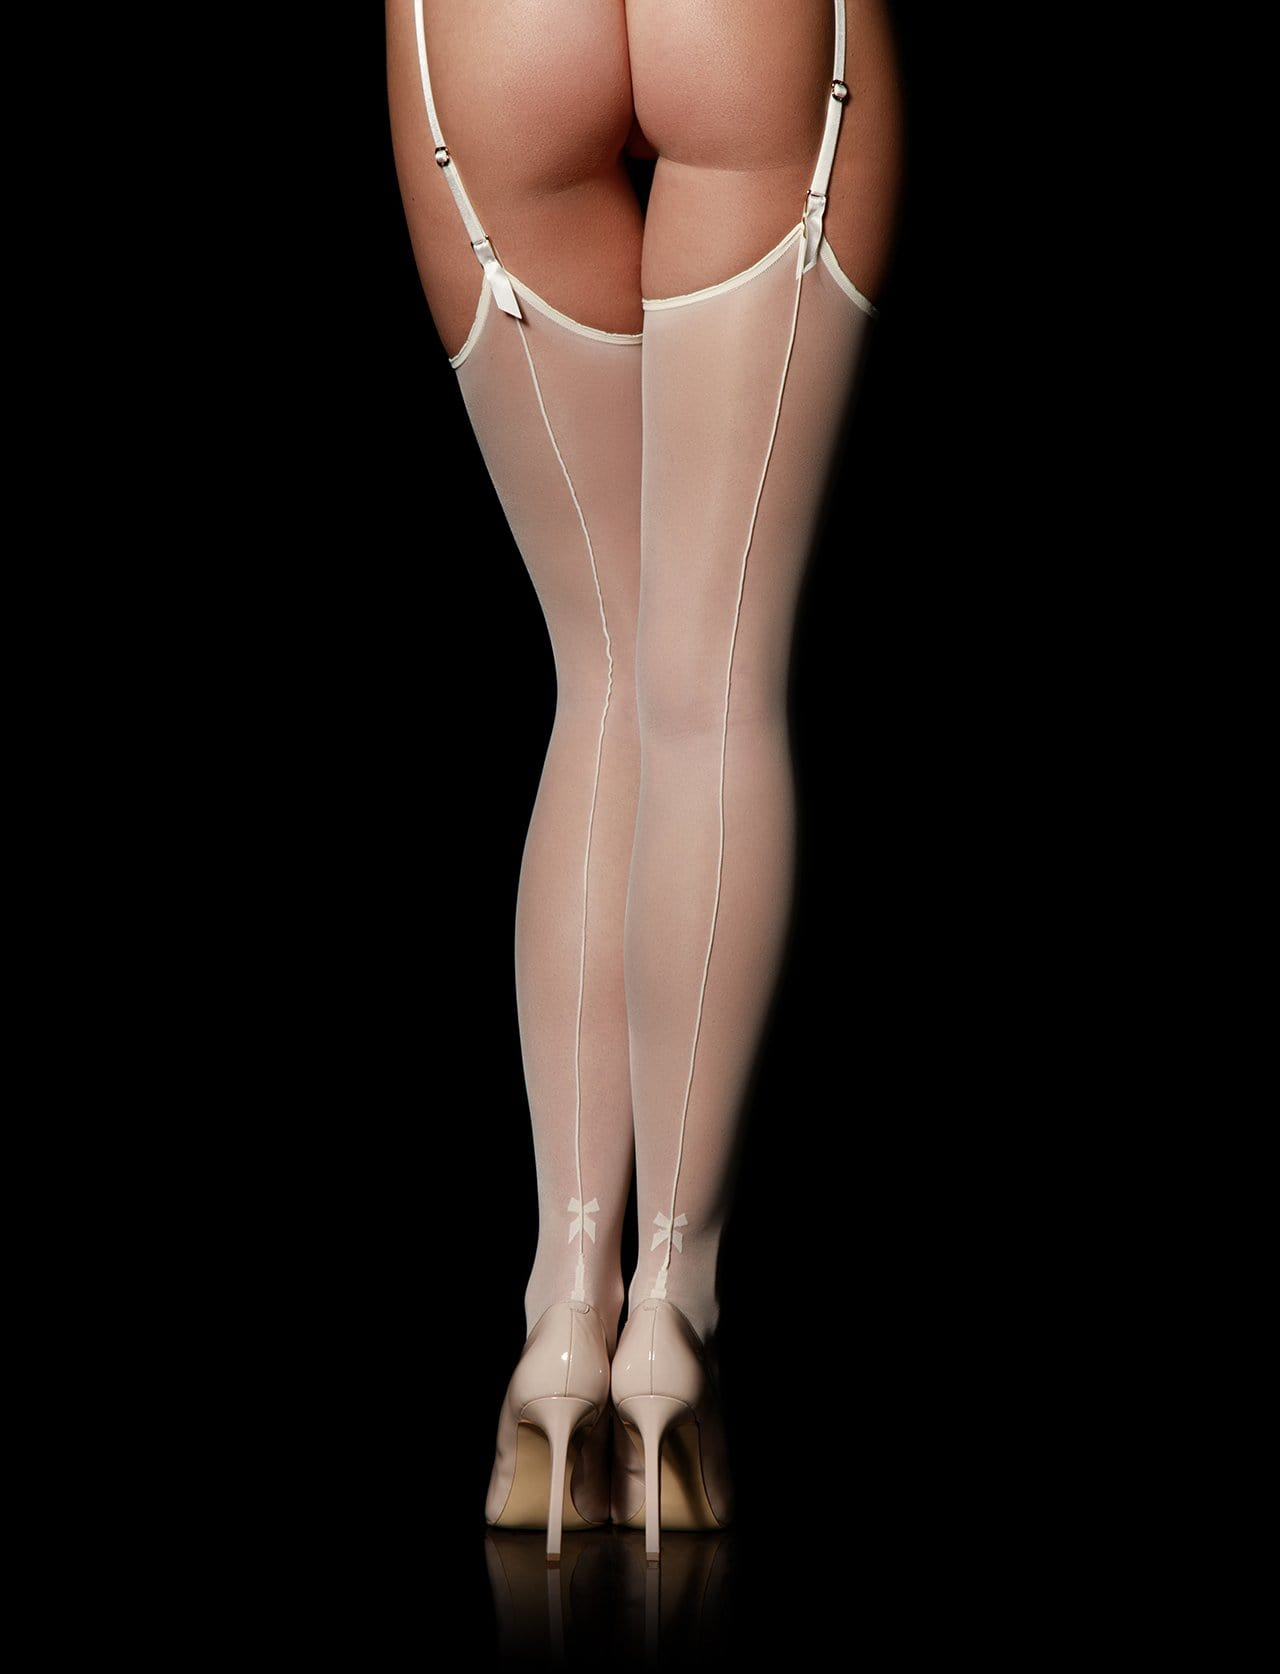 Ivory Bowties Suspender Stockings